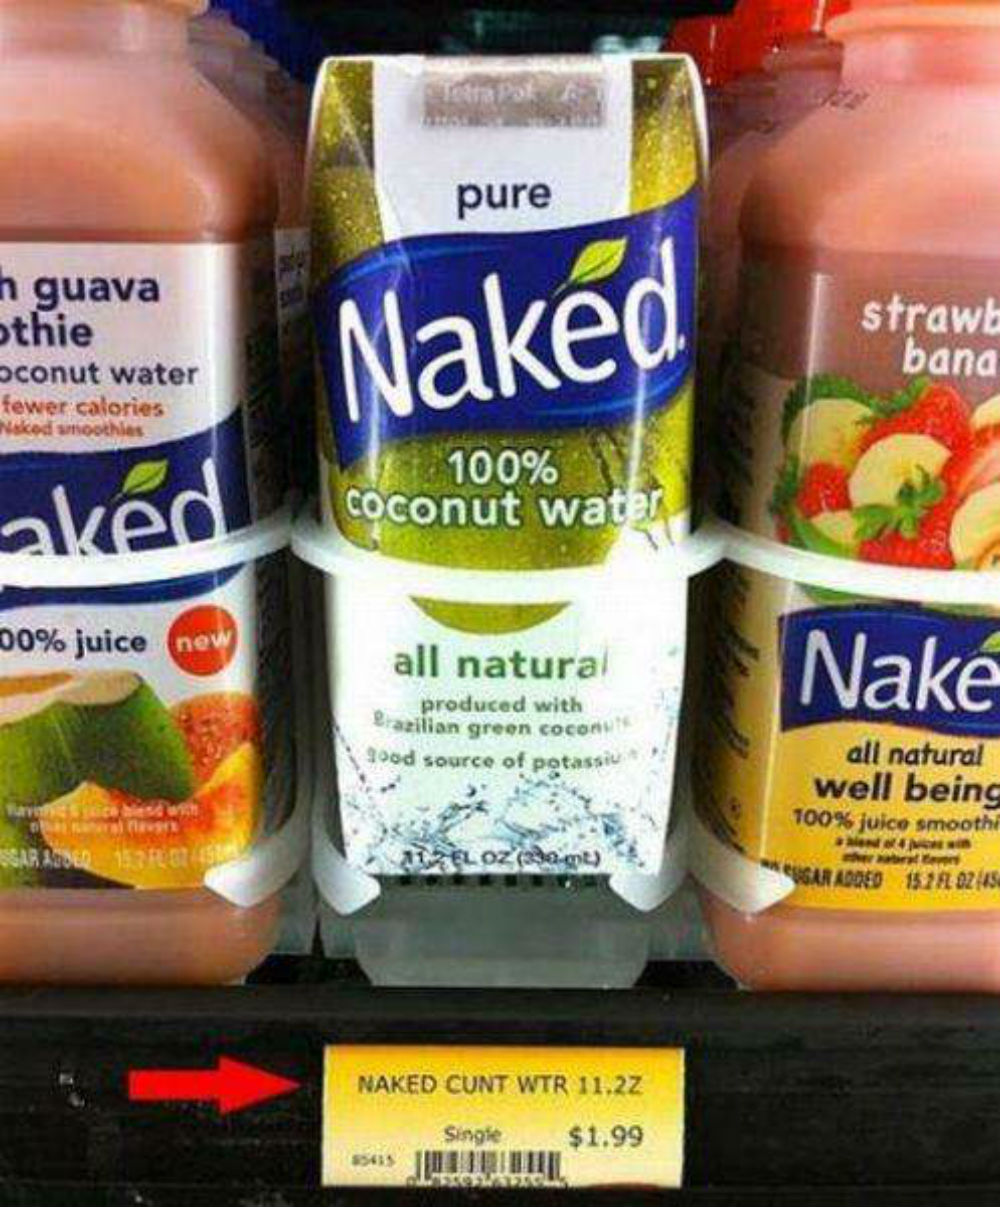 naked-what-water-photo-u1